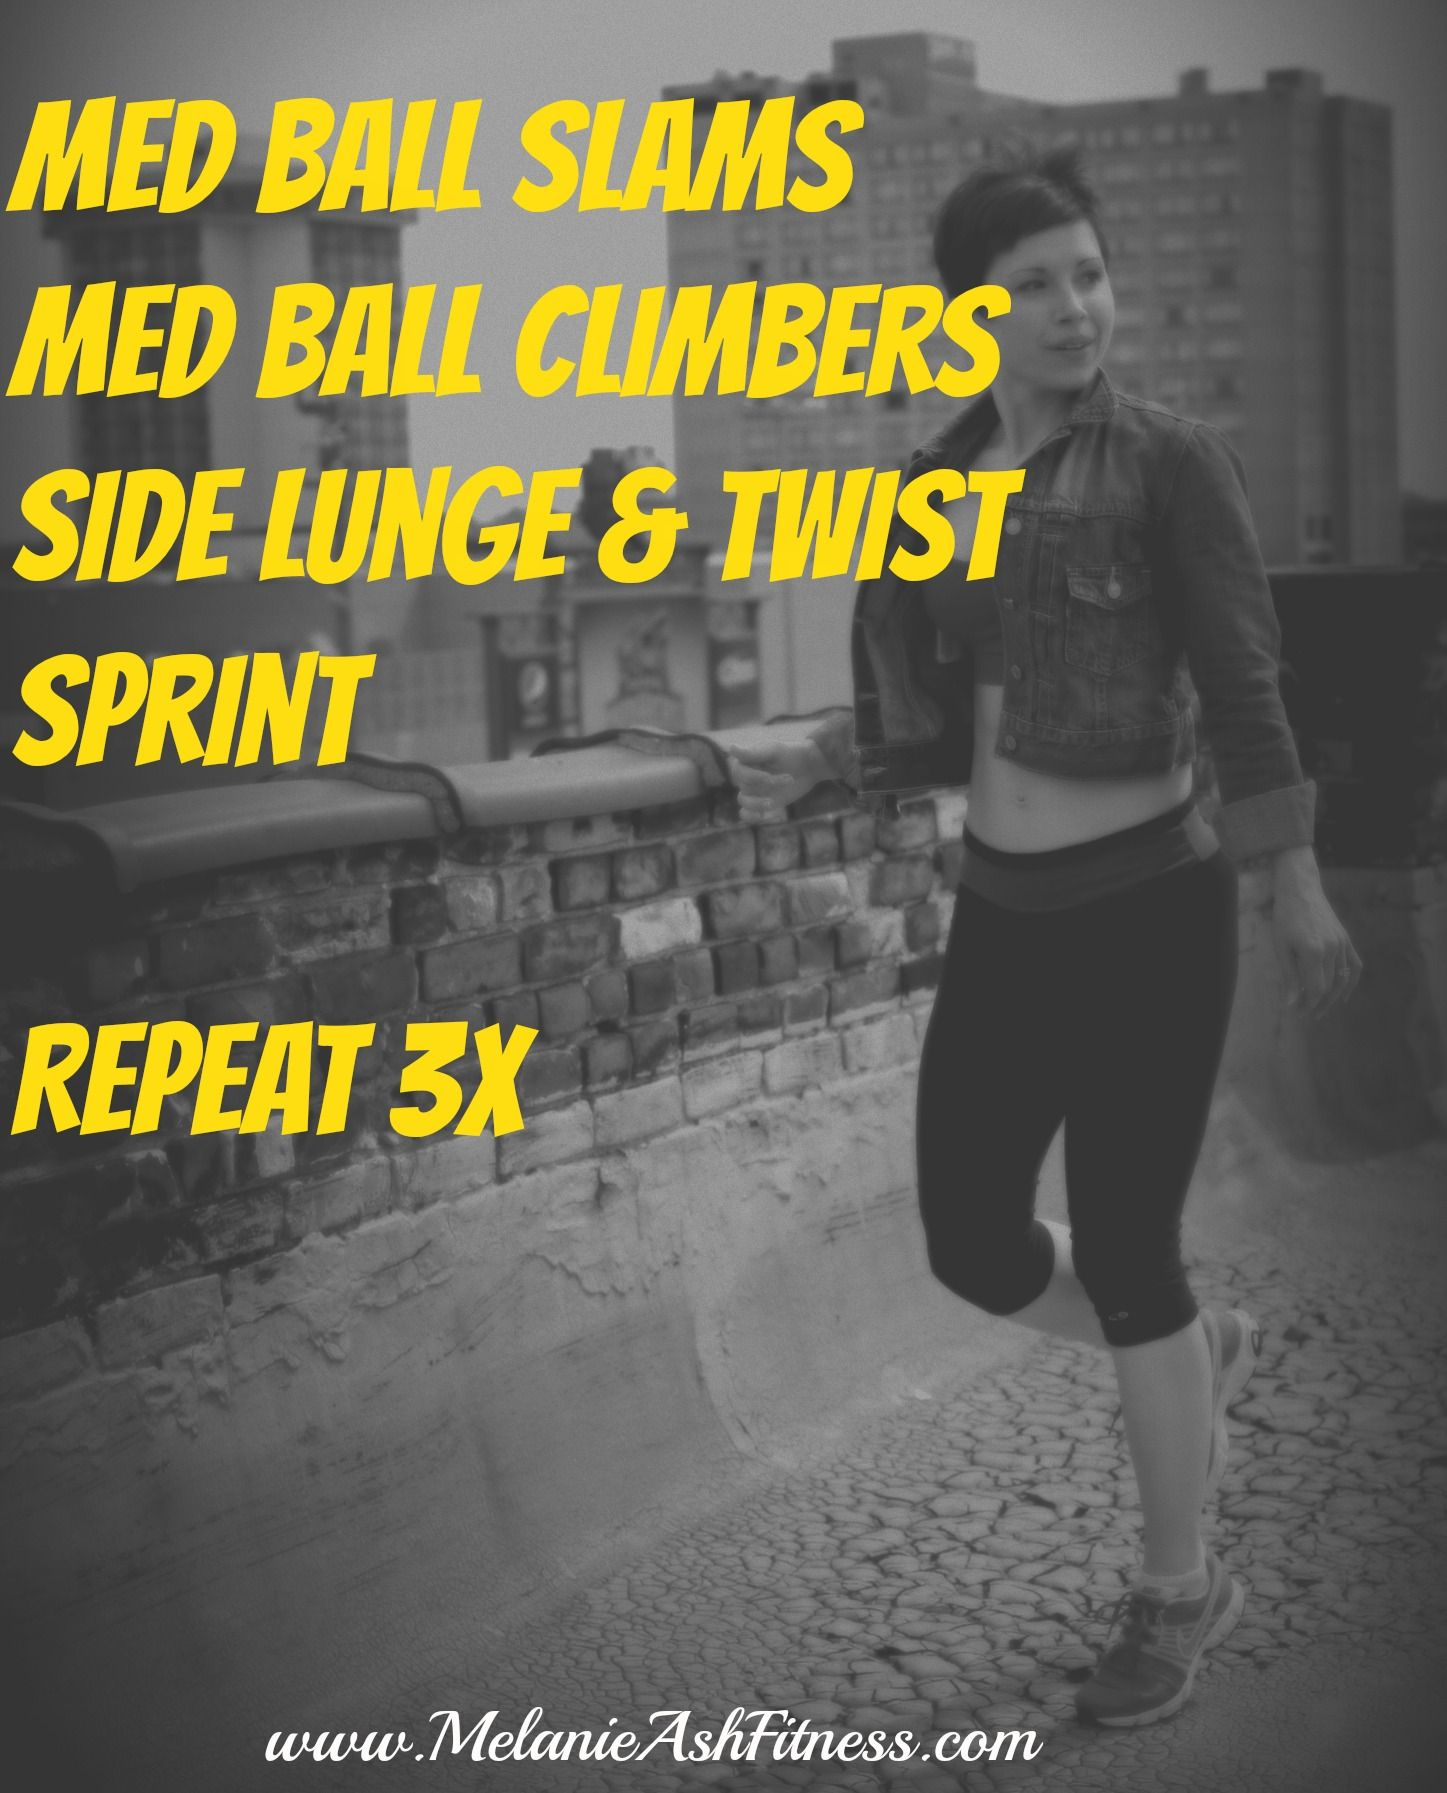 A fun, fast #fatburning #workout to take your cardio off the machine! Do :30 of each move, then rest for 1:00 between circuits.  www.melanieashfitness.com